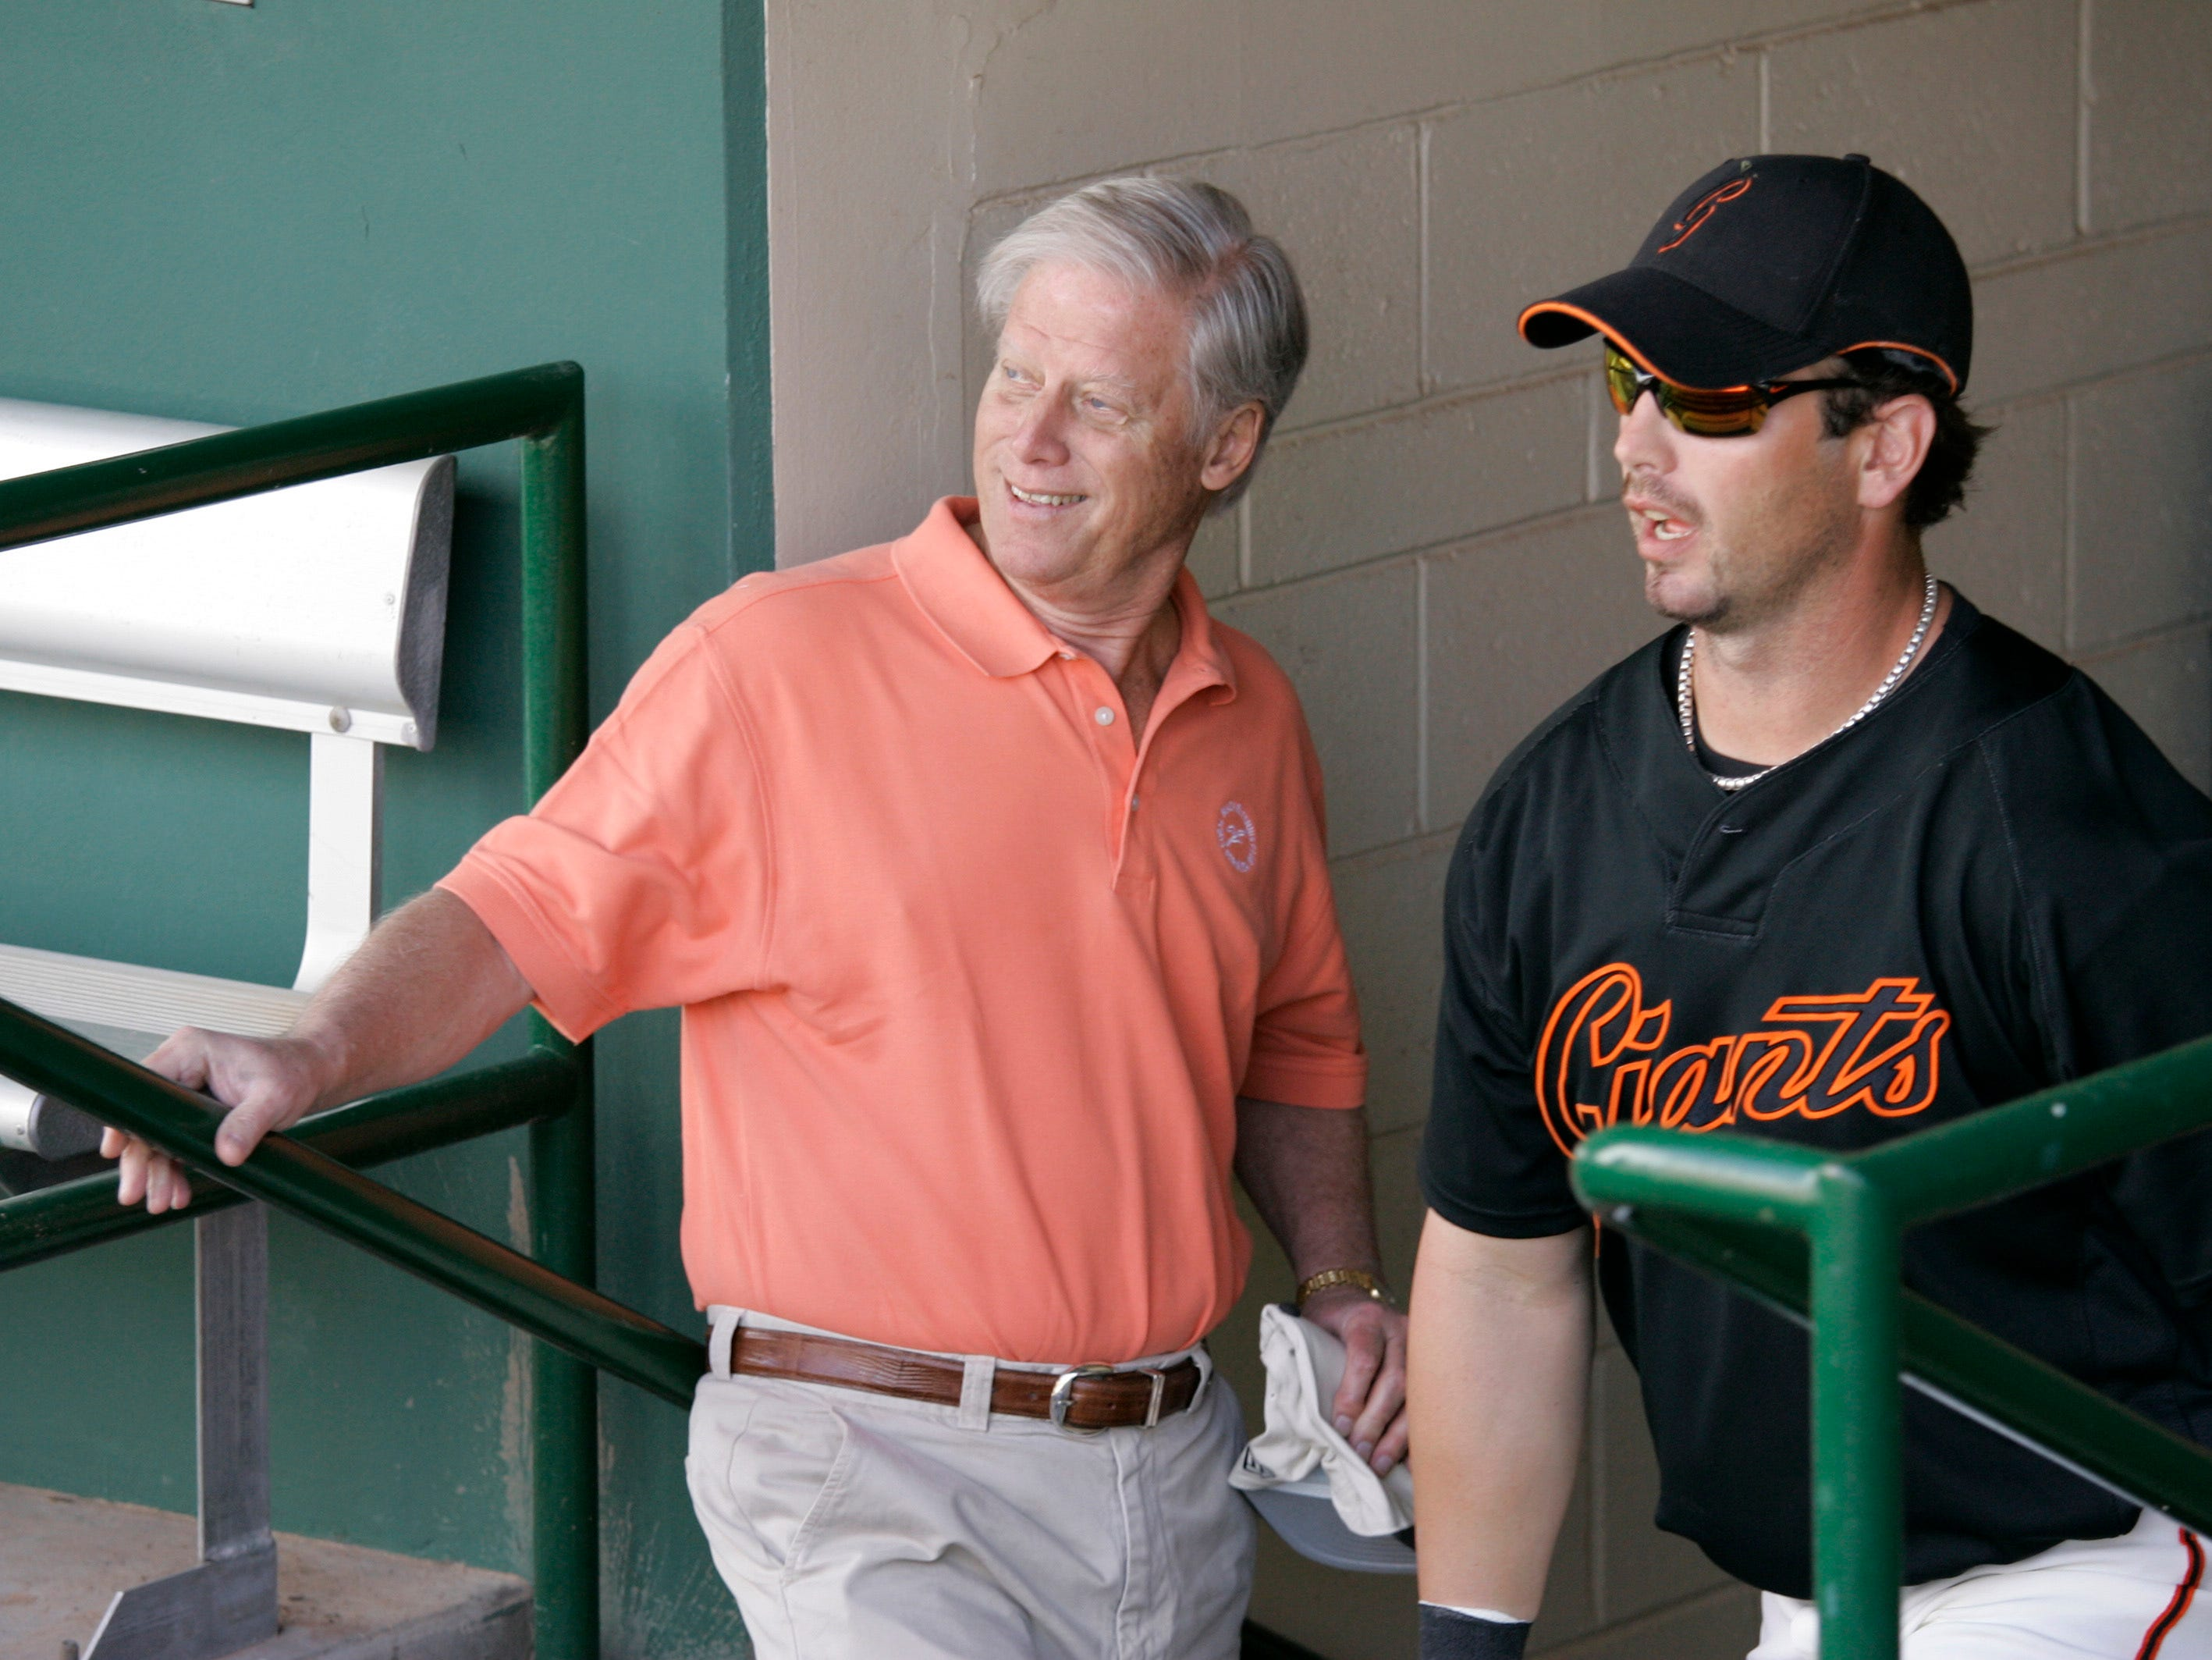 Peter Magowan, long-time owner of the San Francisco Giants, of cancer. Jan. 27. He was 76.